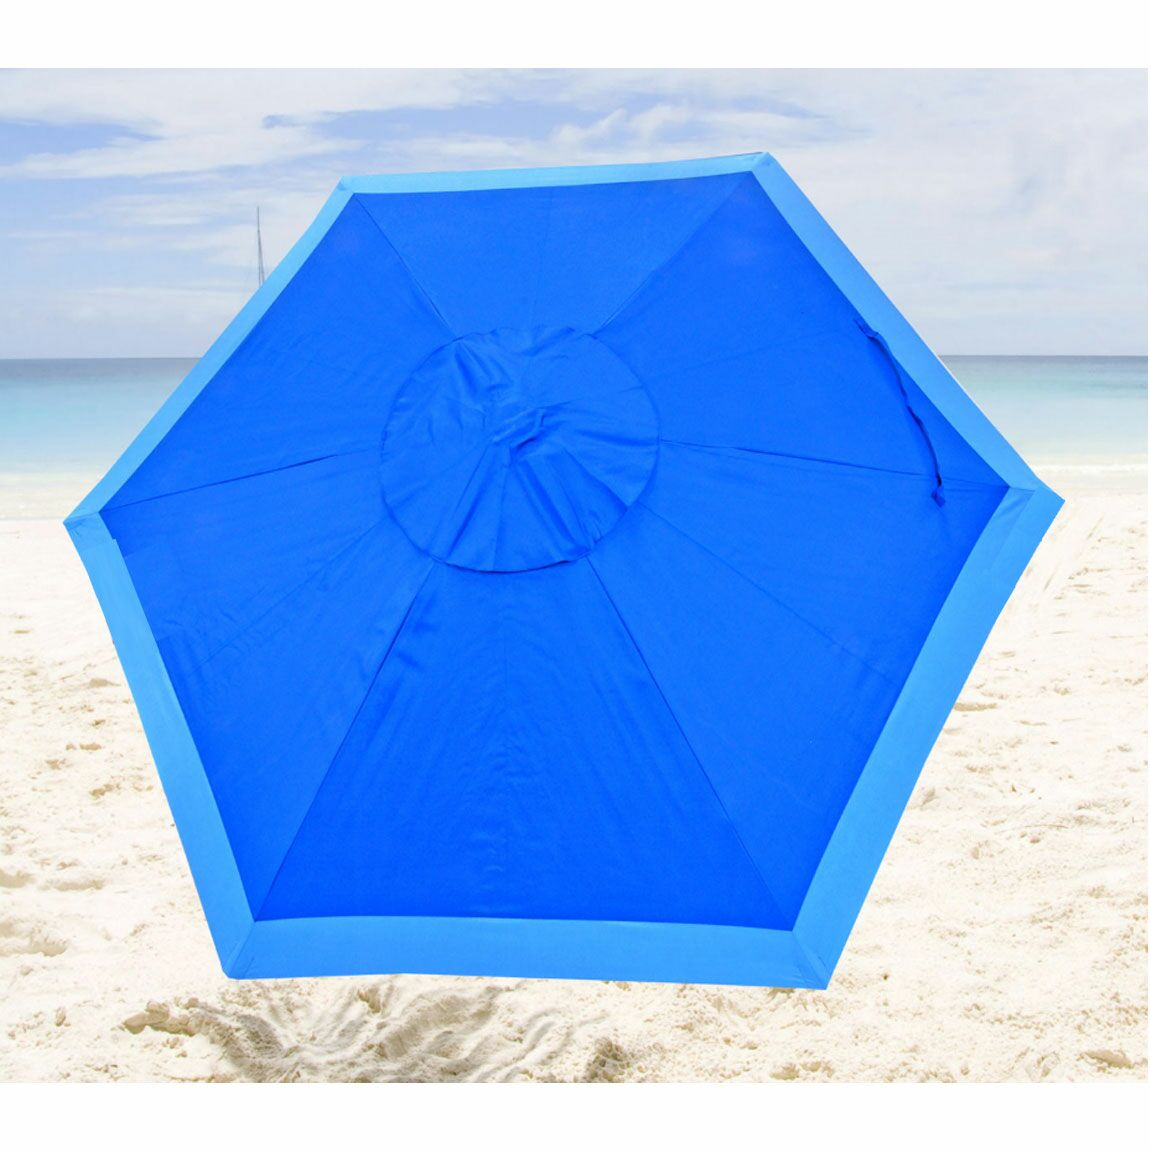 Popular market style umbrella with 7 foot wide canopy is multi-purpose designed for beach, patio or backyard. Its vented top allows heat to rise and dissipate for cool shade under the umbrella and stability in windy conditions. The attractive and rugg...